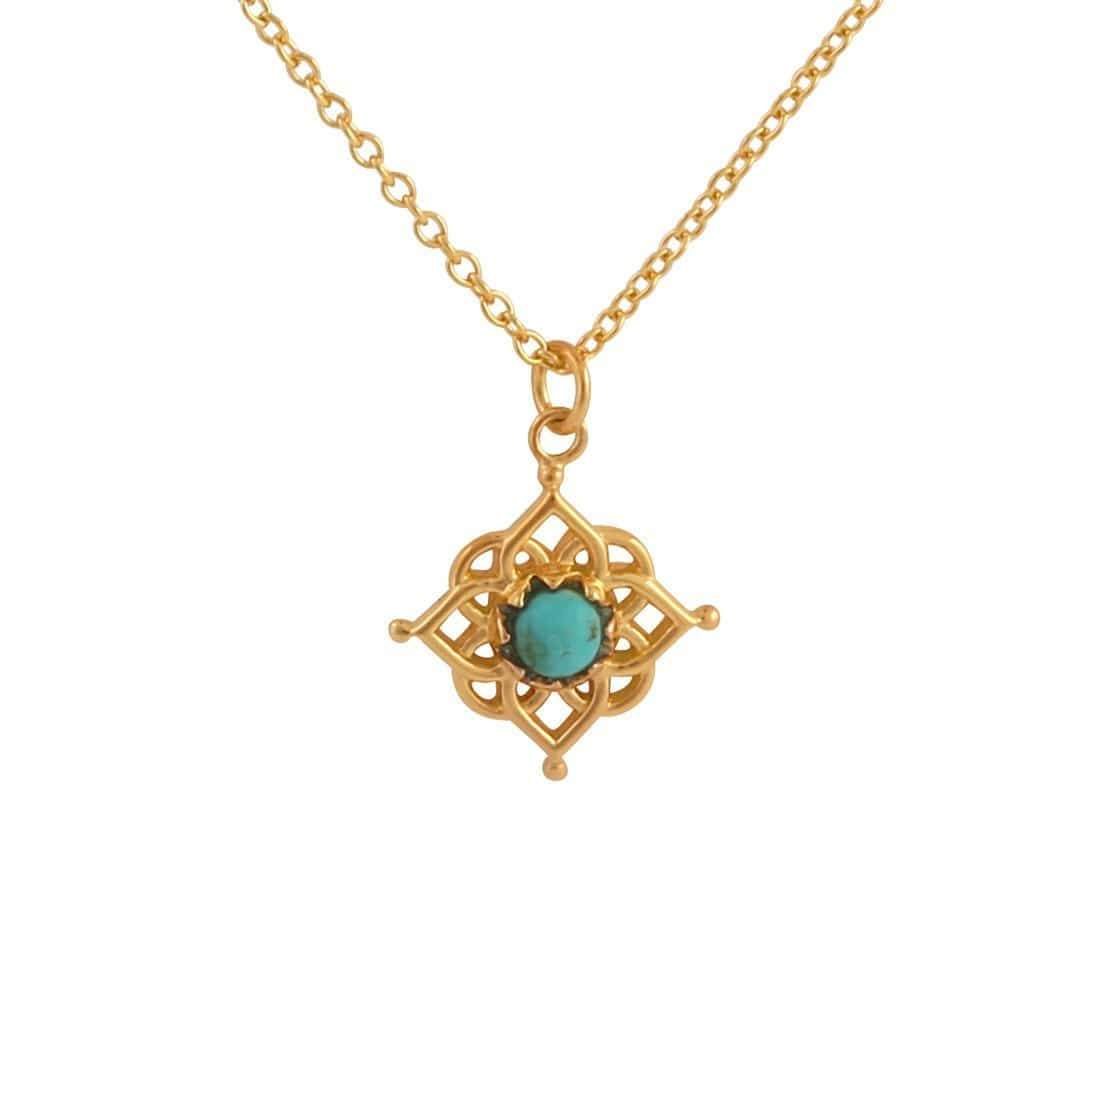 Midsummer Star Necklaces Gold Cosmic Mandala Turquoise Necklace